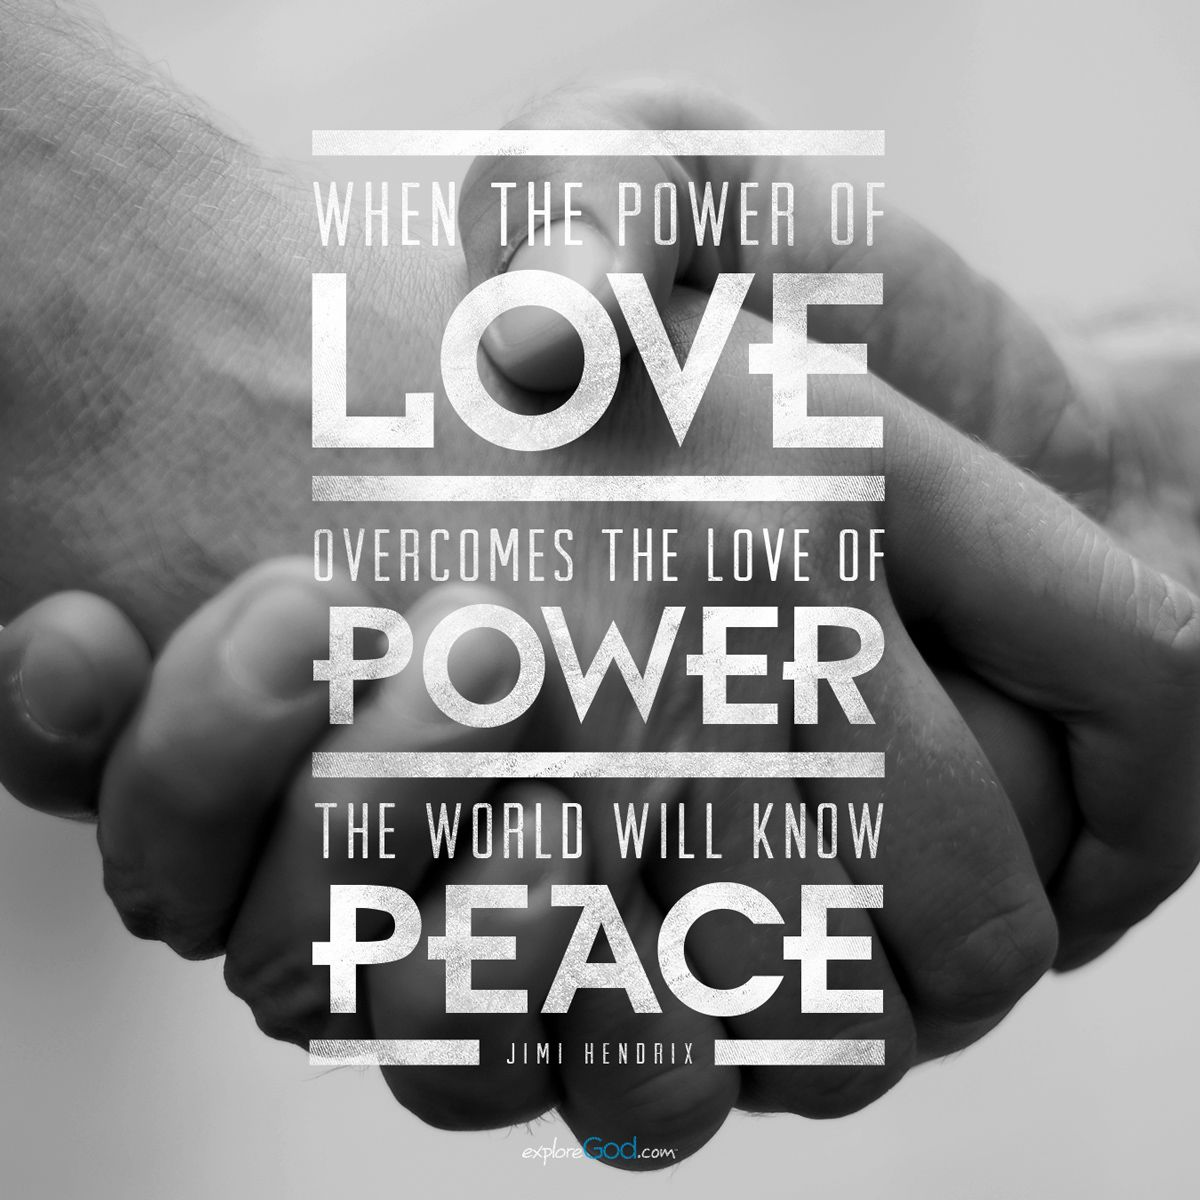 When The Power Of Love Overcomes The Love Of Power The World Will Know Peace Jimi Hendrix Quote Volunteer Quotes Quotes About God Quotes To Live By